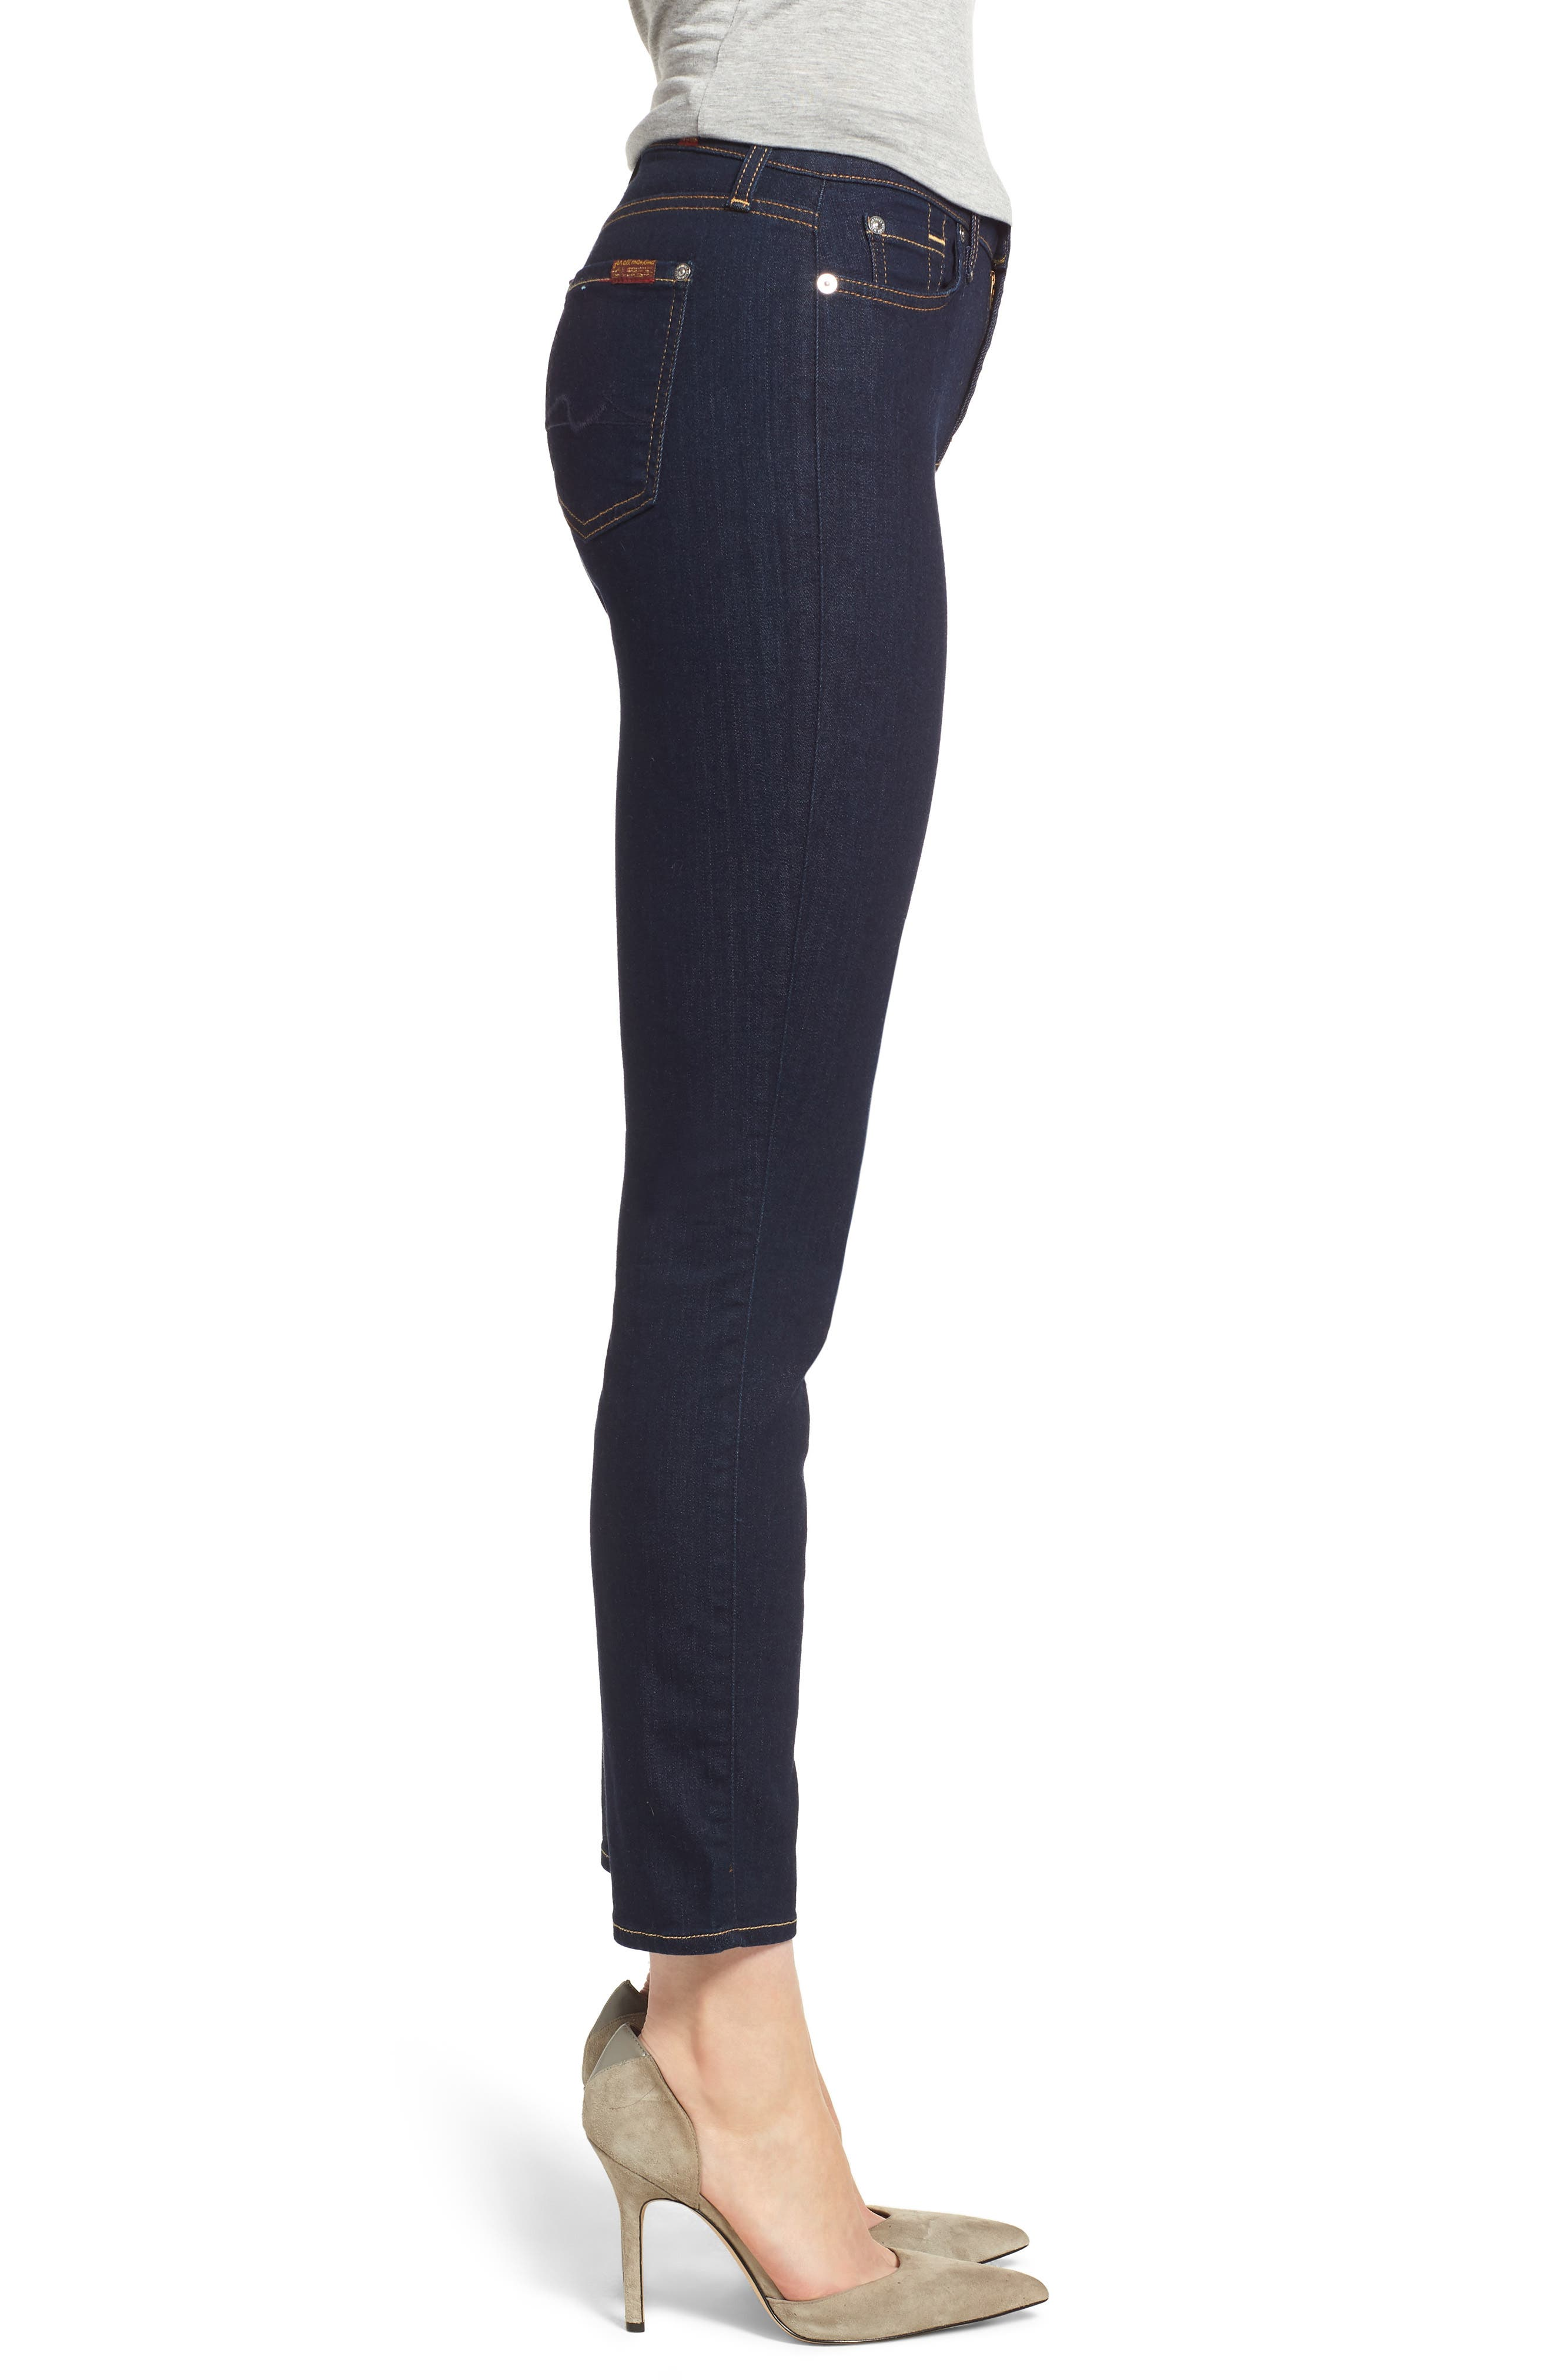 b(air) Roxanne Ankle Skinny Jeans,                             Alternate thumbnail 6, color,                             B(Air) Authentic Rinse